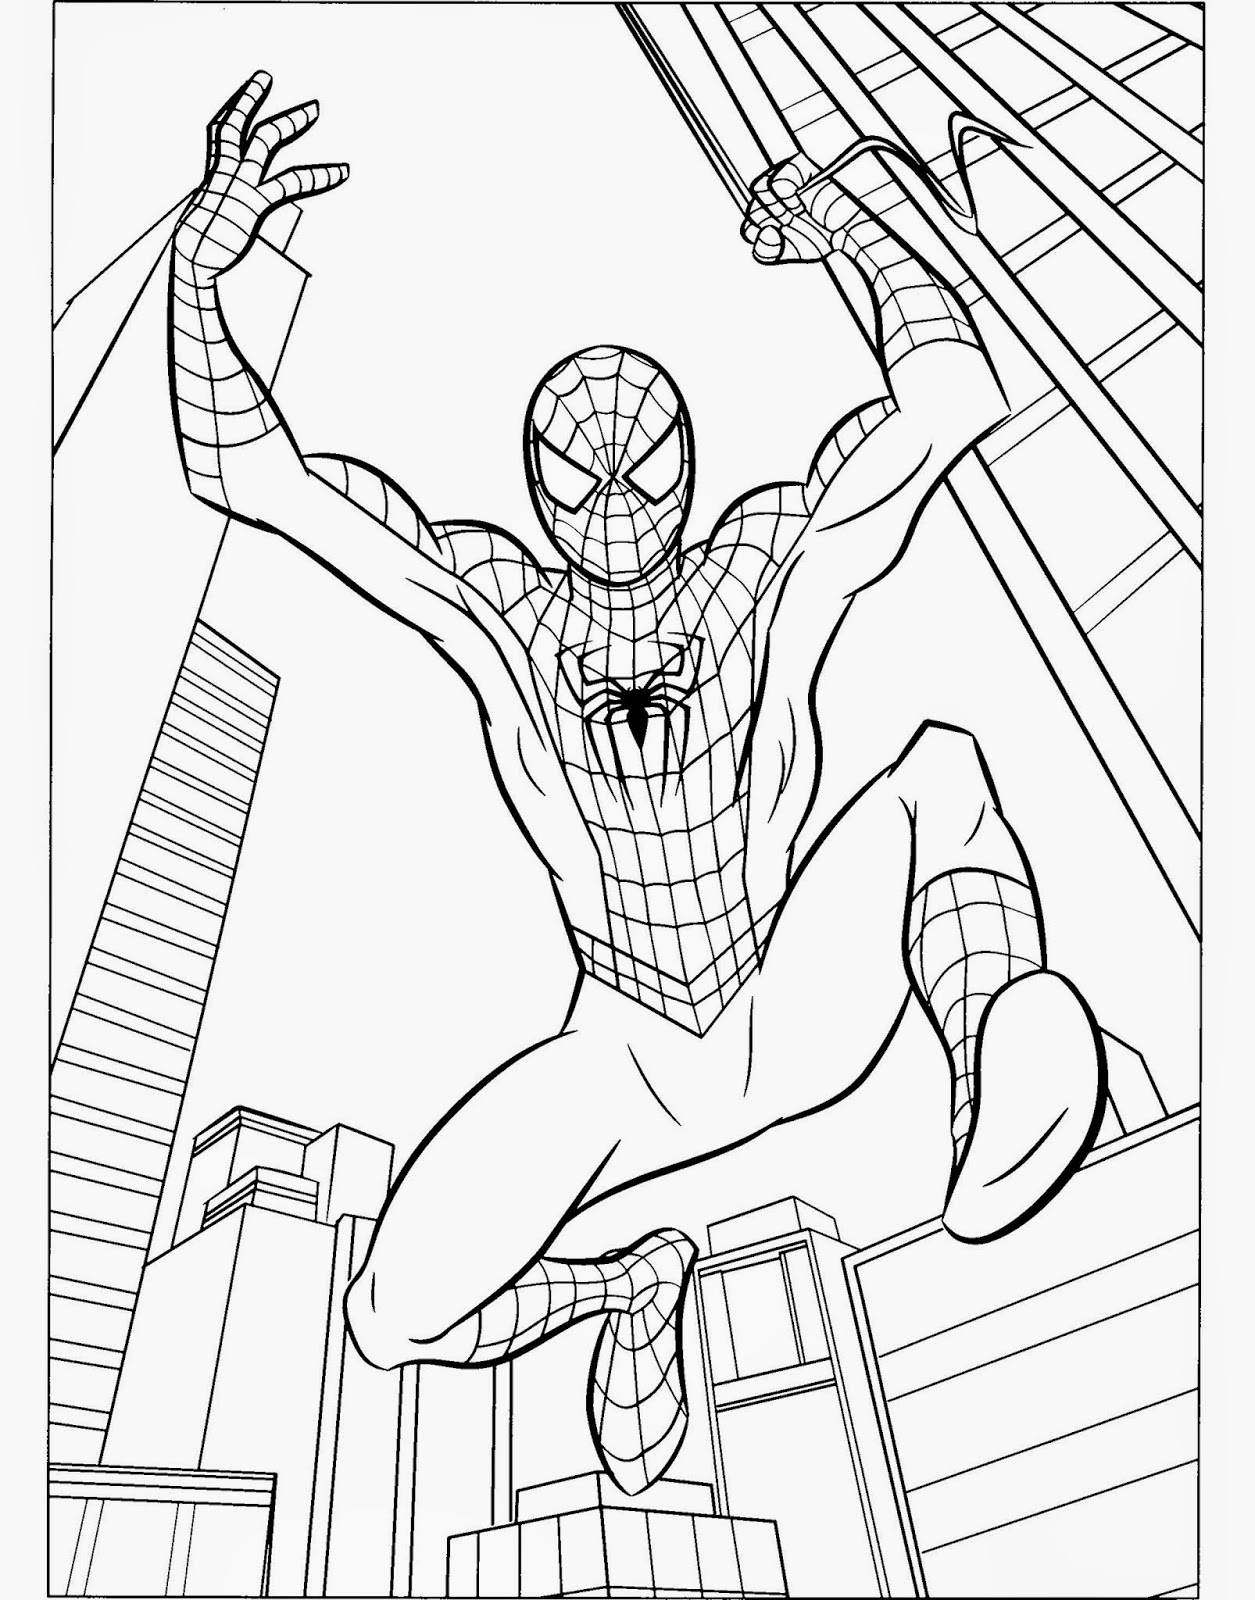 amazing spider man coloring pages spiderman 3 coloring pages coloringpages1001com spider pages man amazing coloring